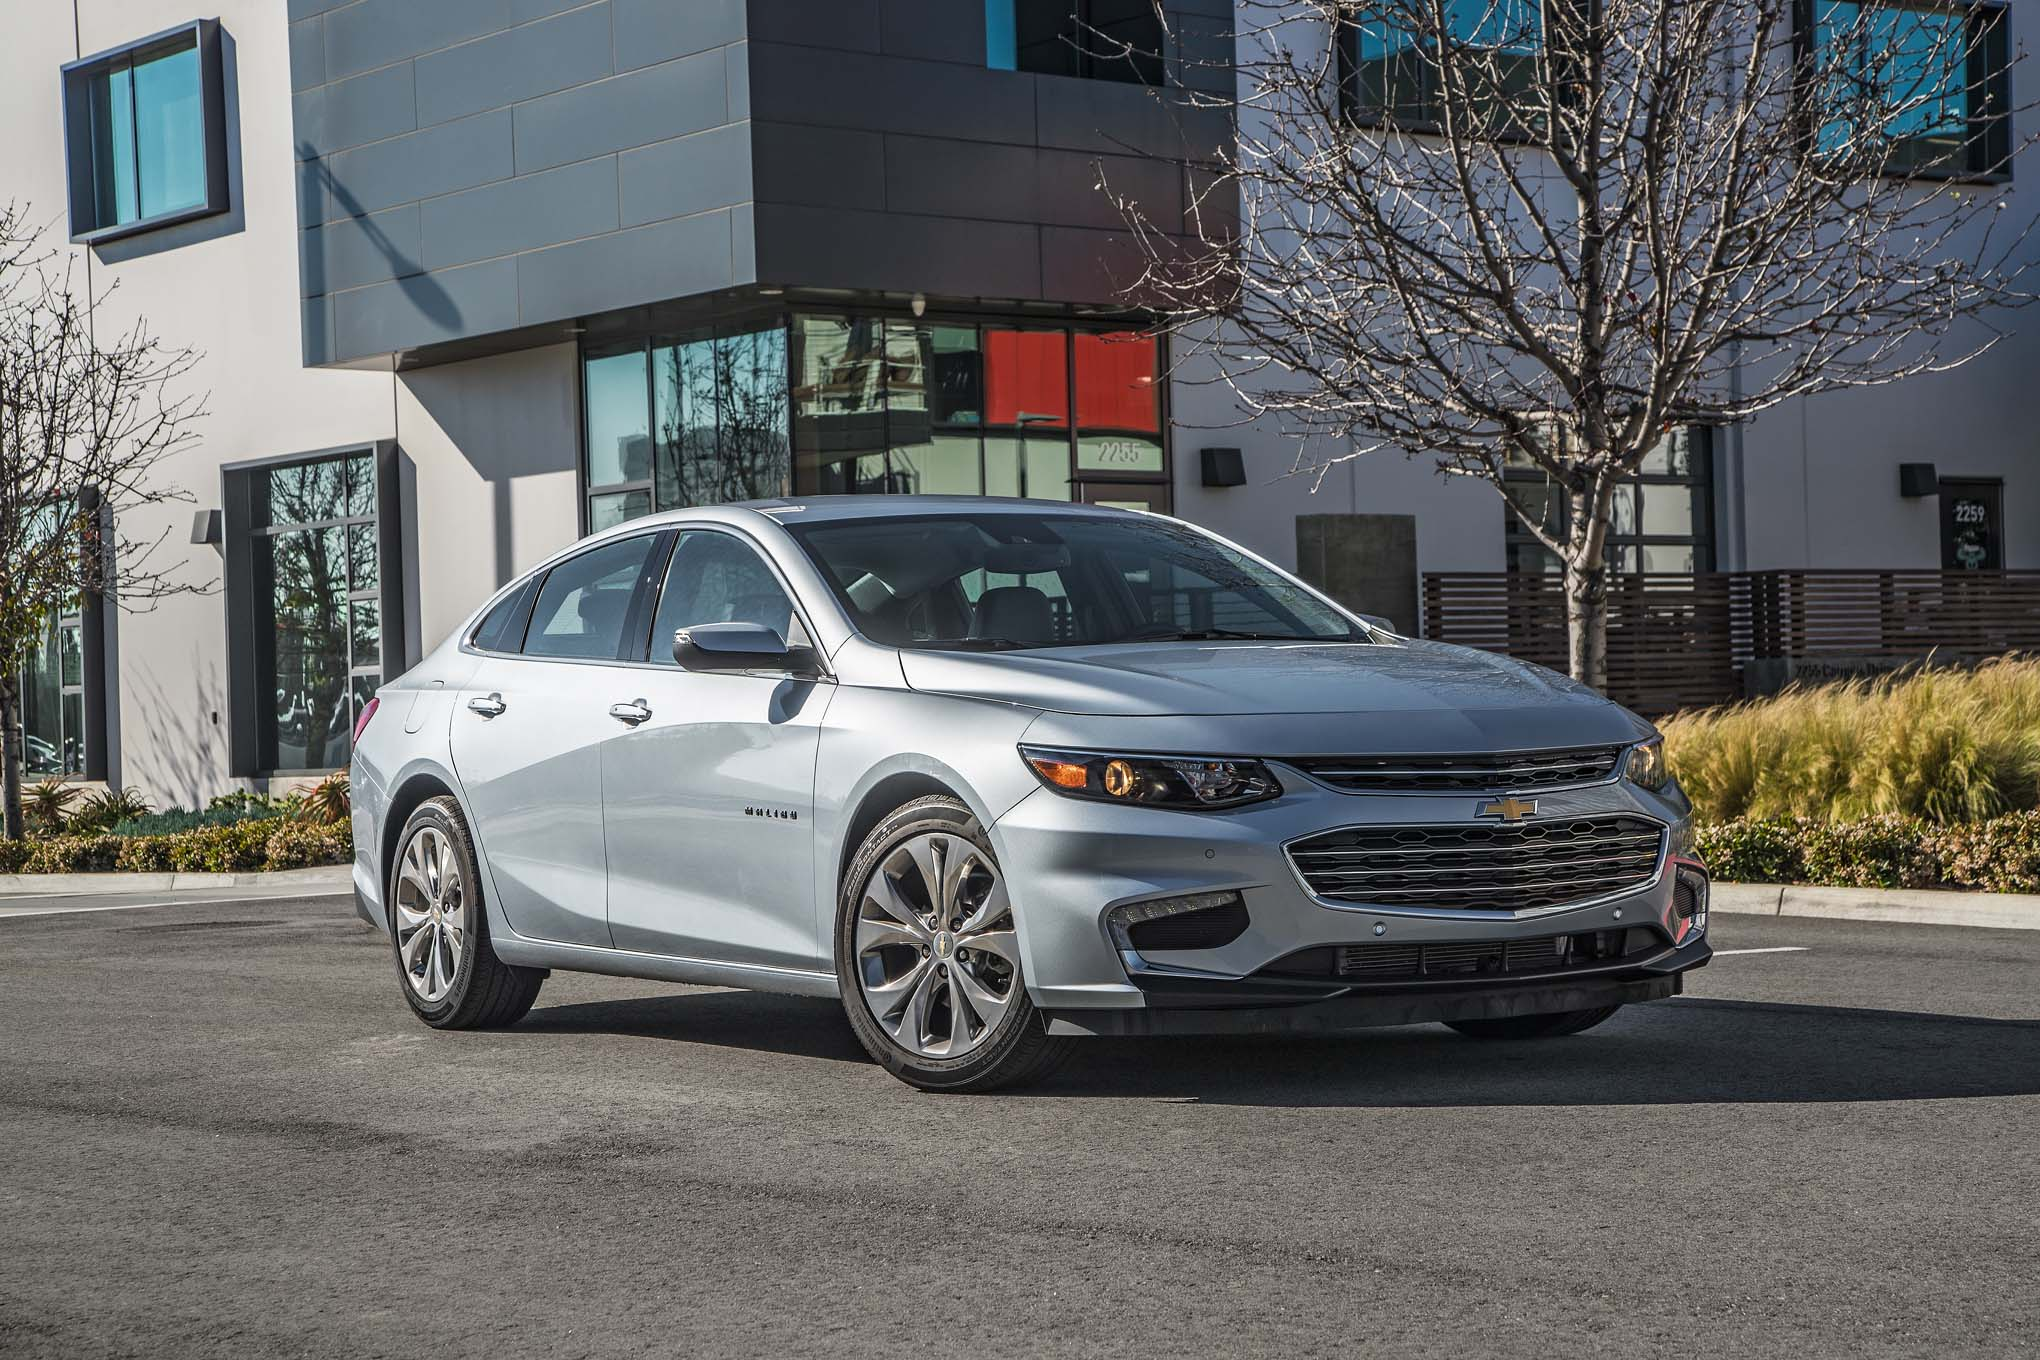 2017 Chevrolet Malibu for Sale near Lenexa, KS